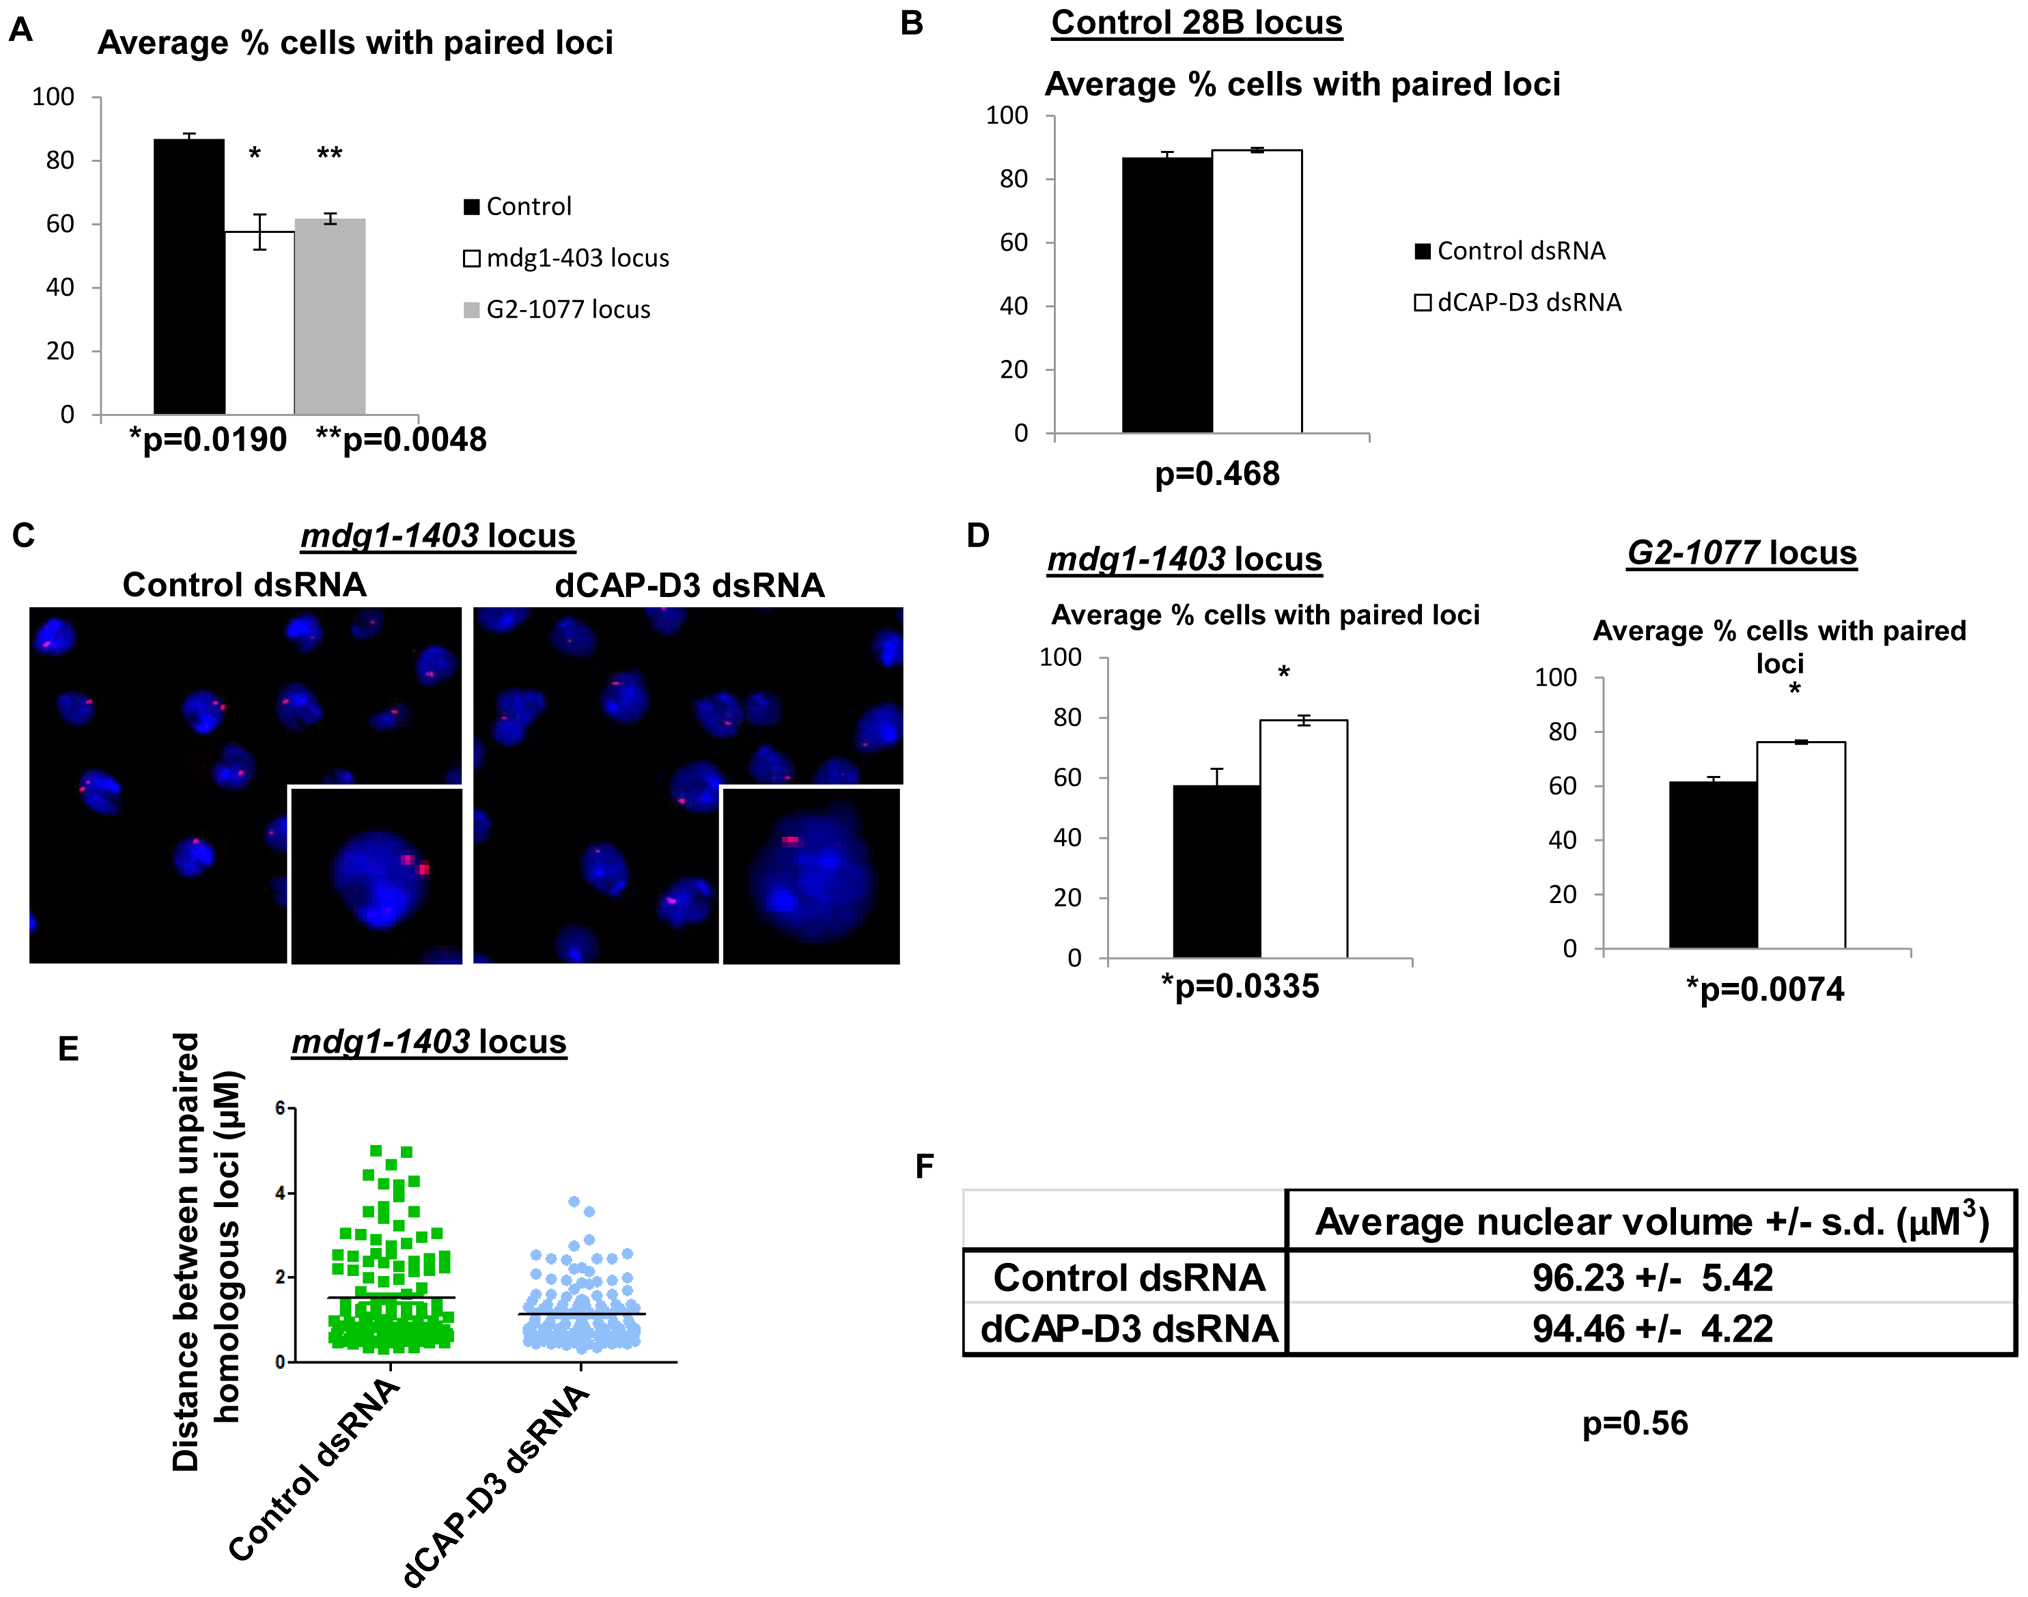 Pairing of retrotransposon loci on homologous chromosomes is increased in cells treated with dCAP-D3 dsRNAs.